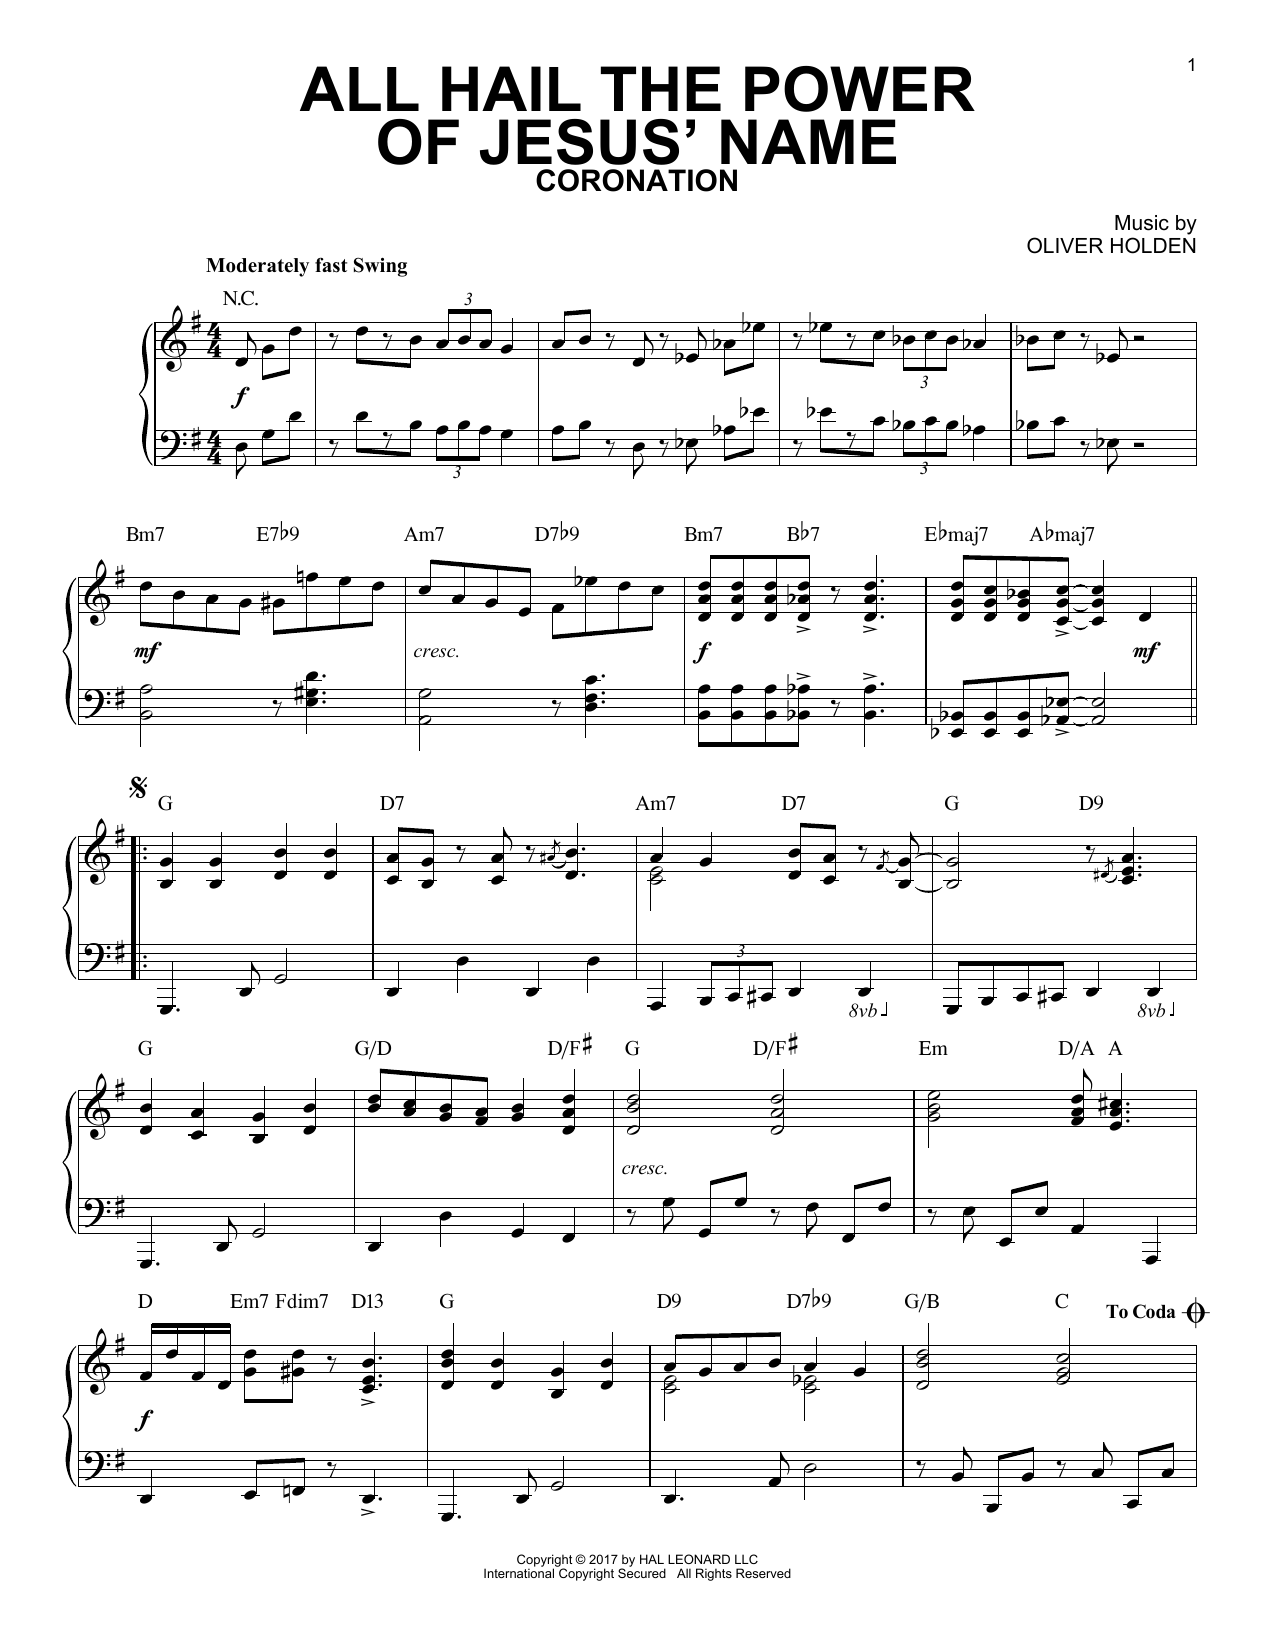 Edward Perronet All Hail The Power Of Jesus' Name [Jazz version] sheet music notes and chords. Download Printable PDF.